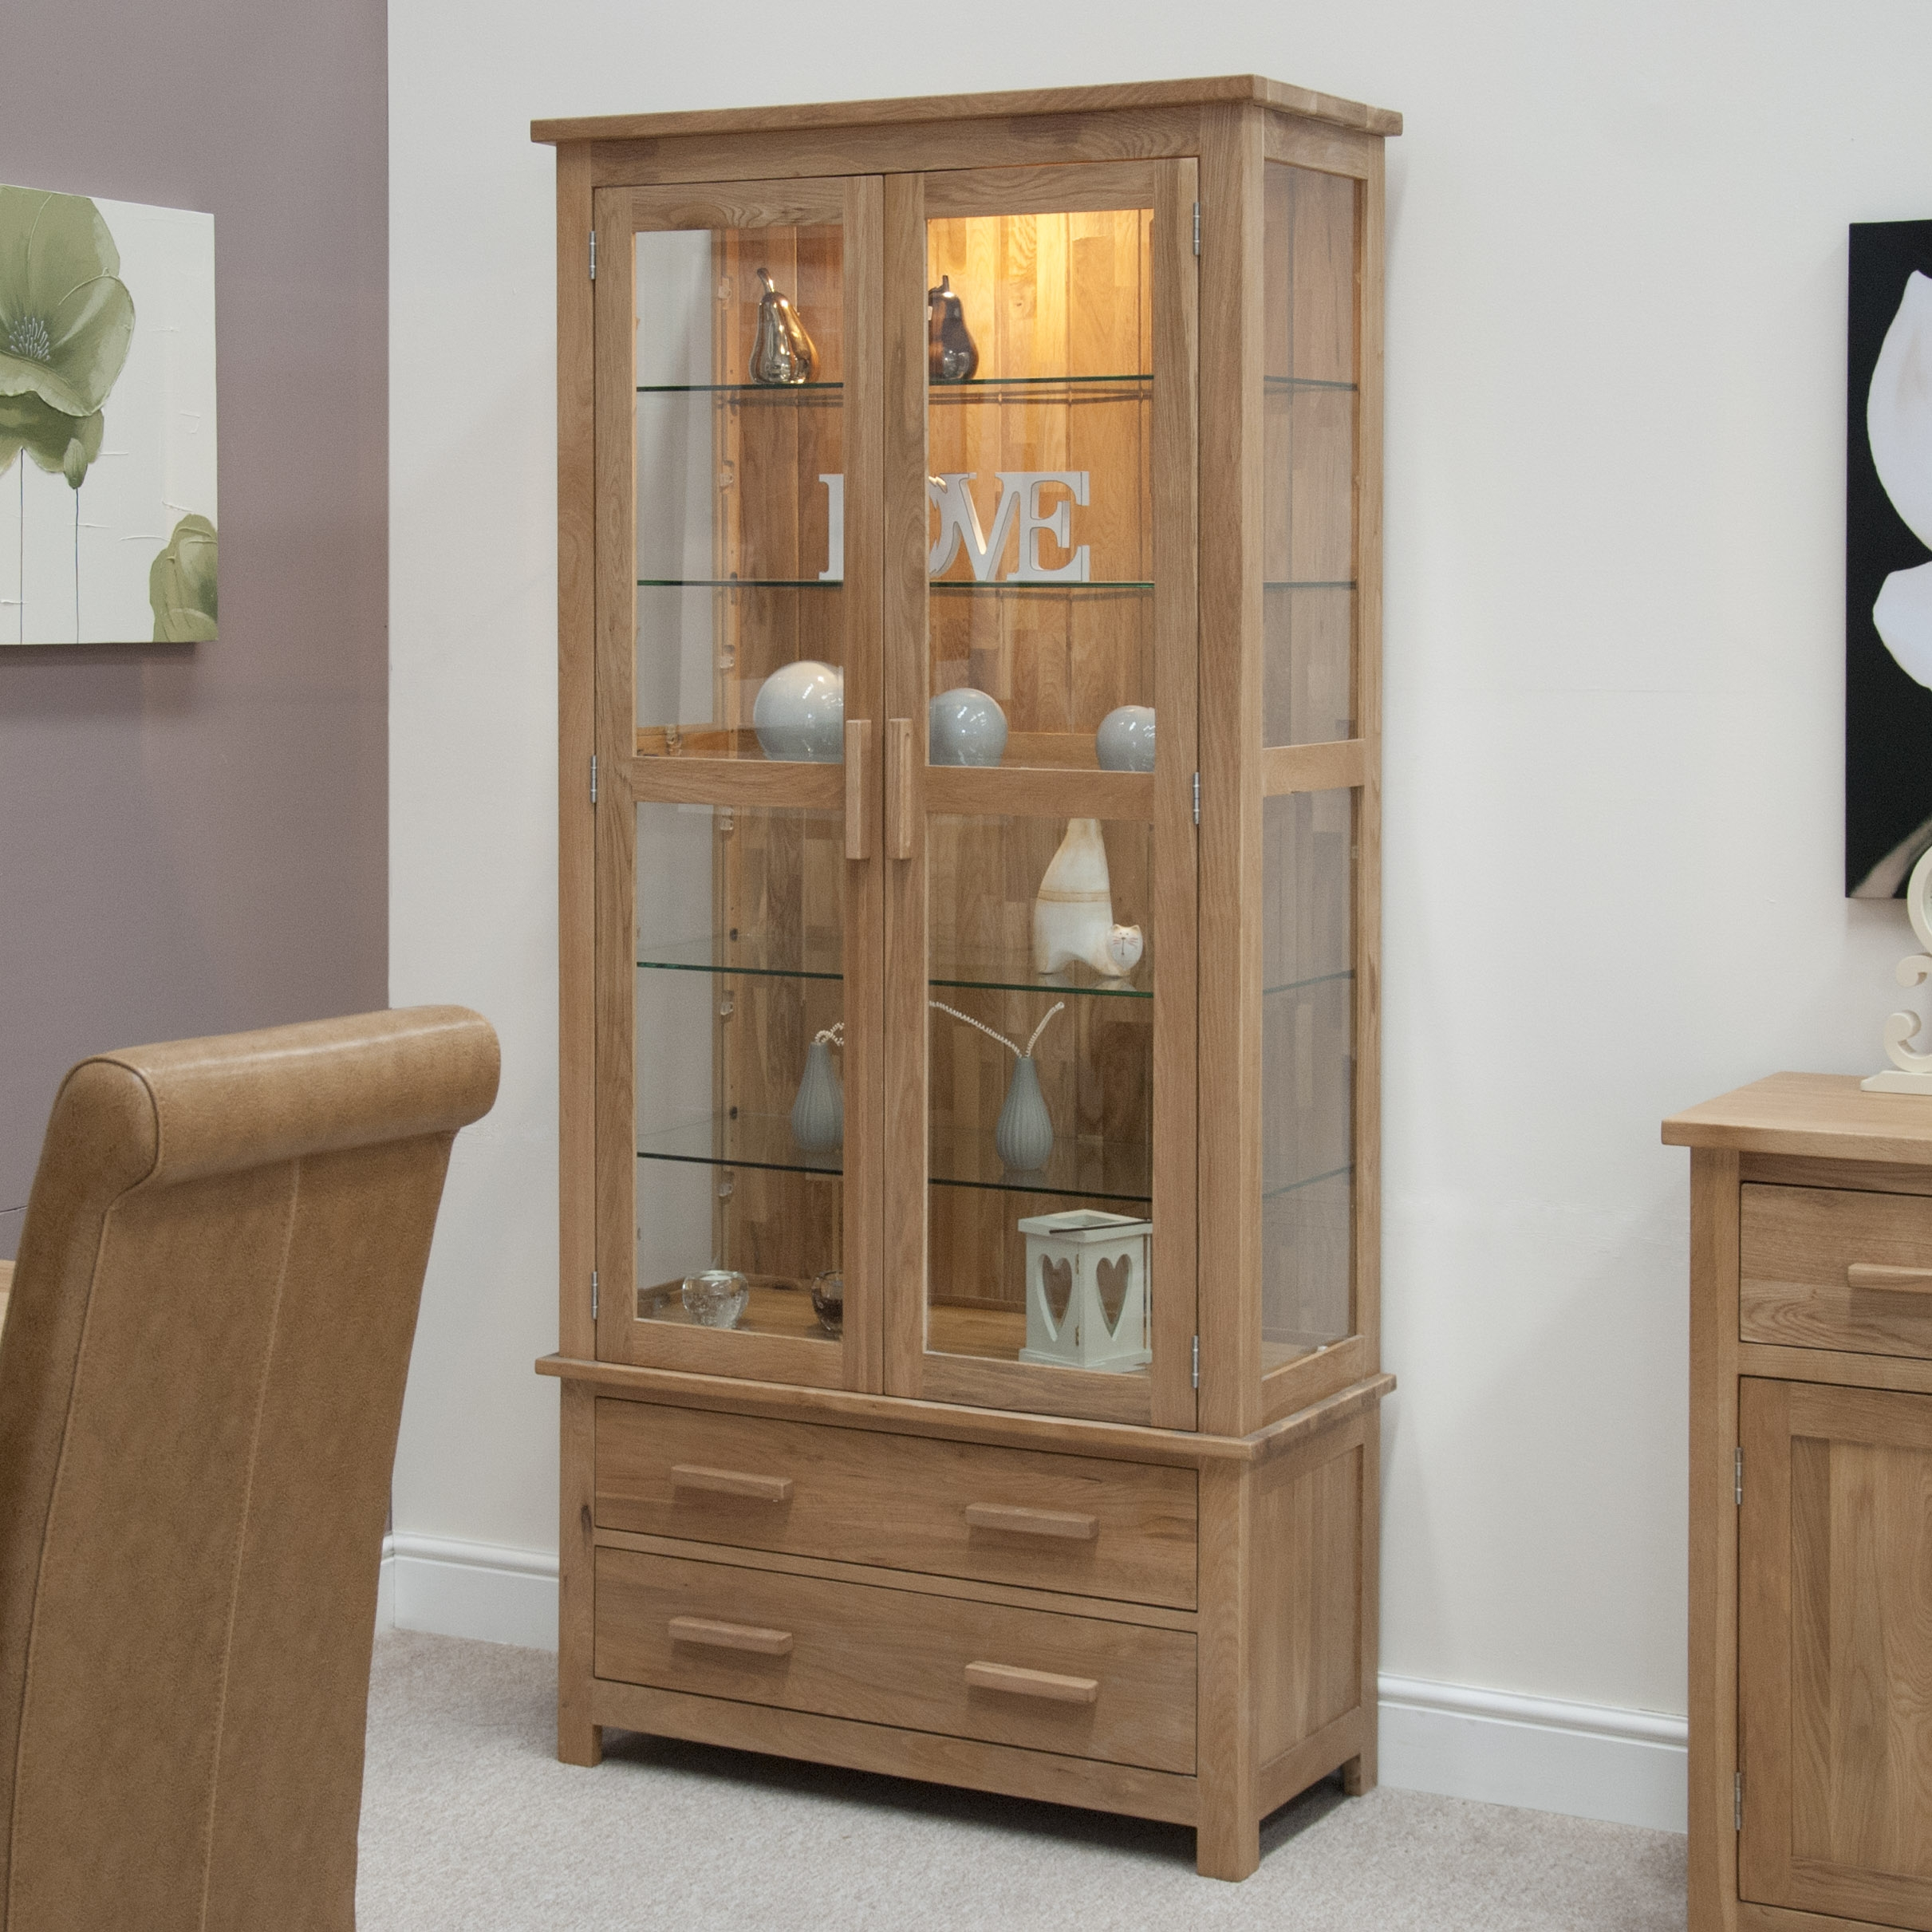 Small Display Cabinet For Kitchen